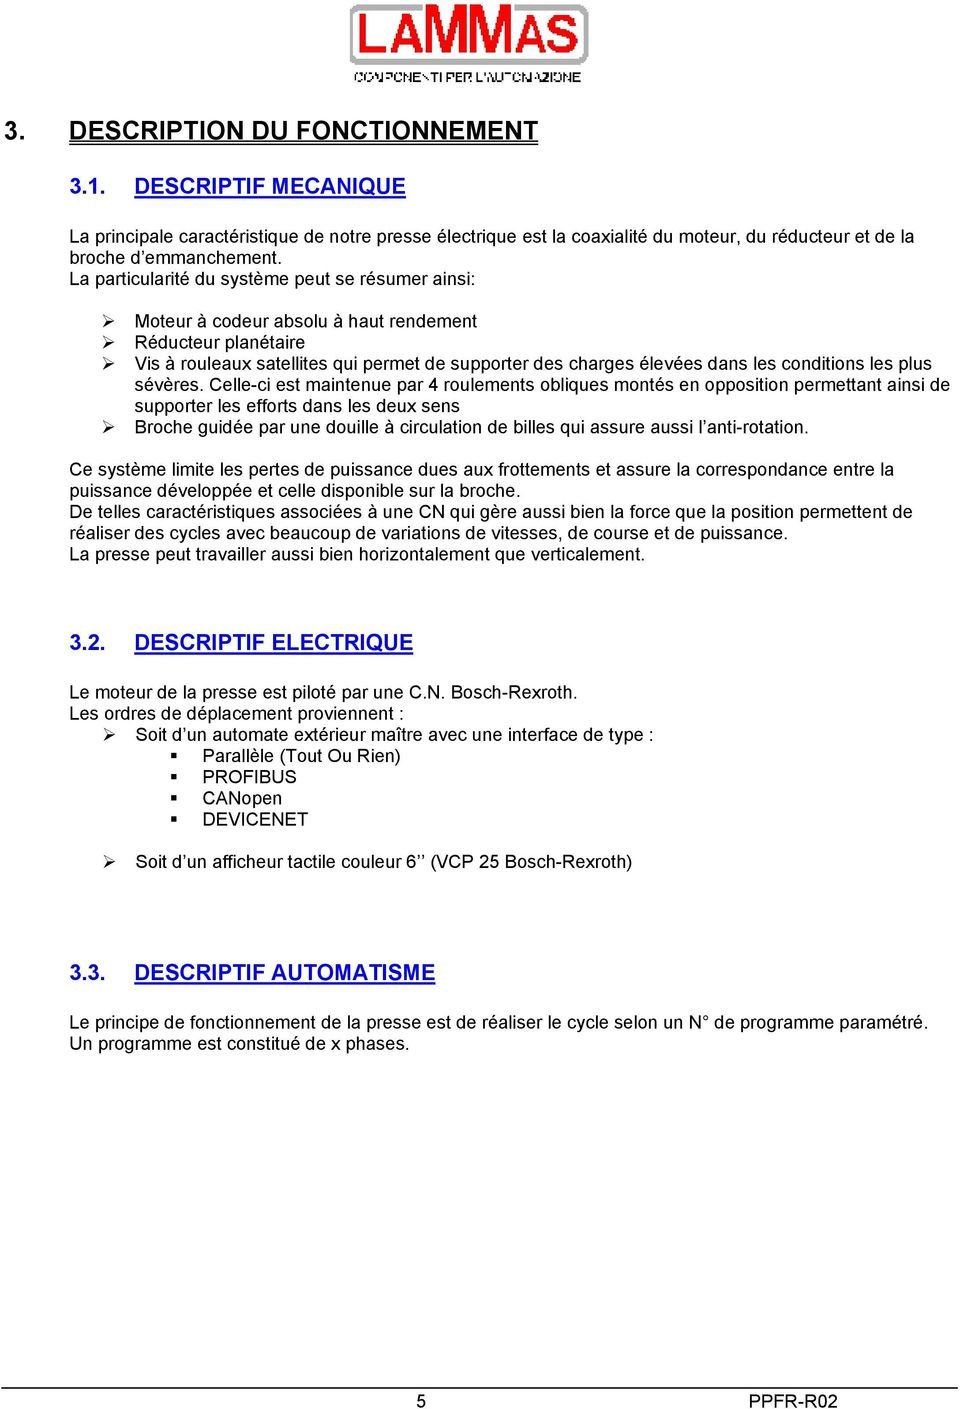 conditions les plus sévères.